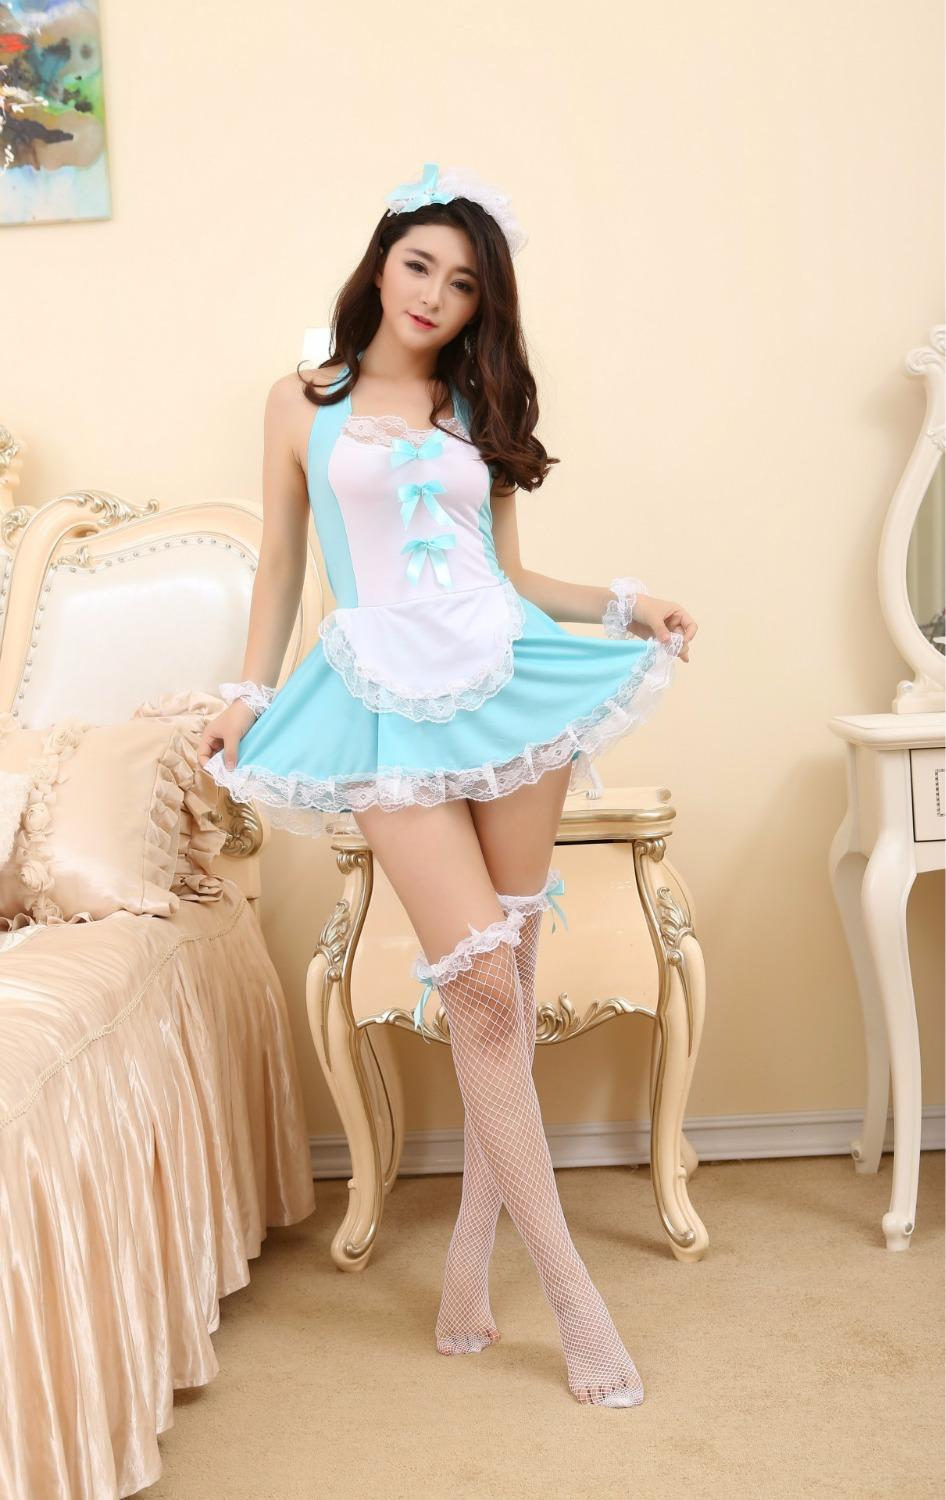 GOYHOZMI Sexy lingerie cosplay maid suit hanging neck lace maid uniforms headwear + dress+ stockings set costumes sexy underwear